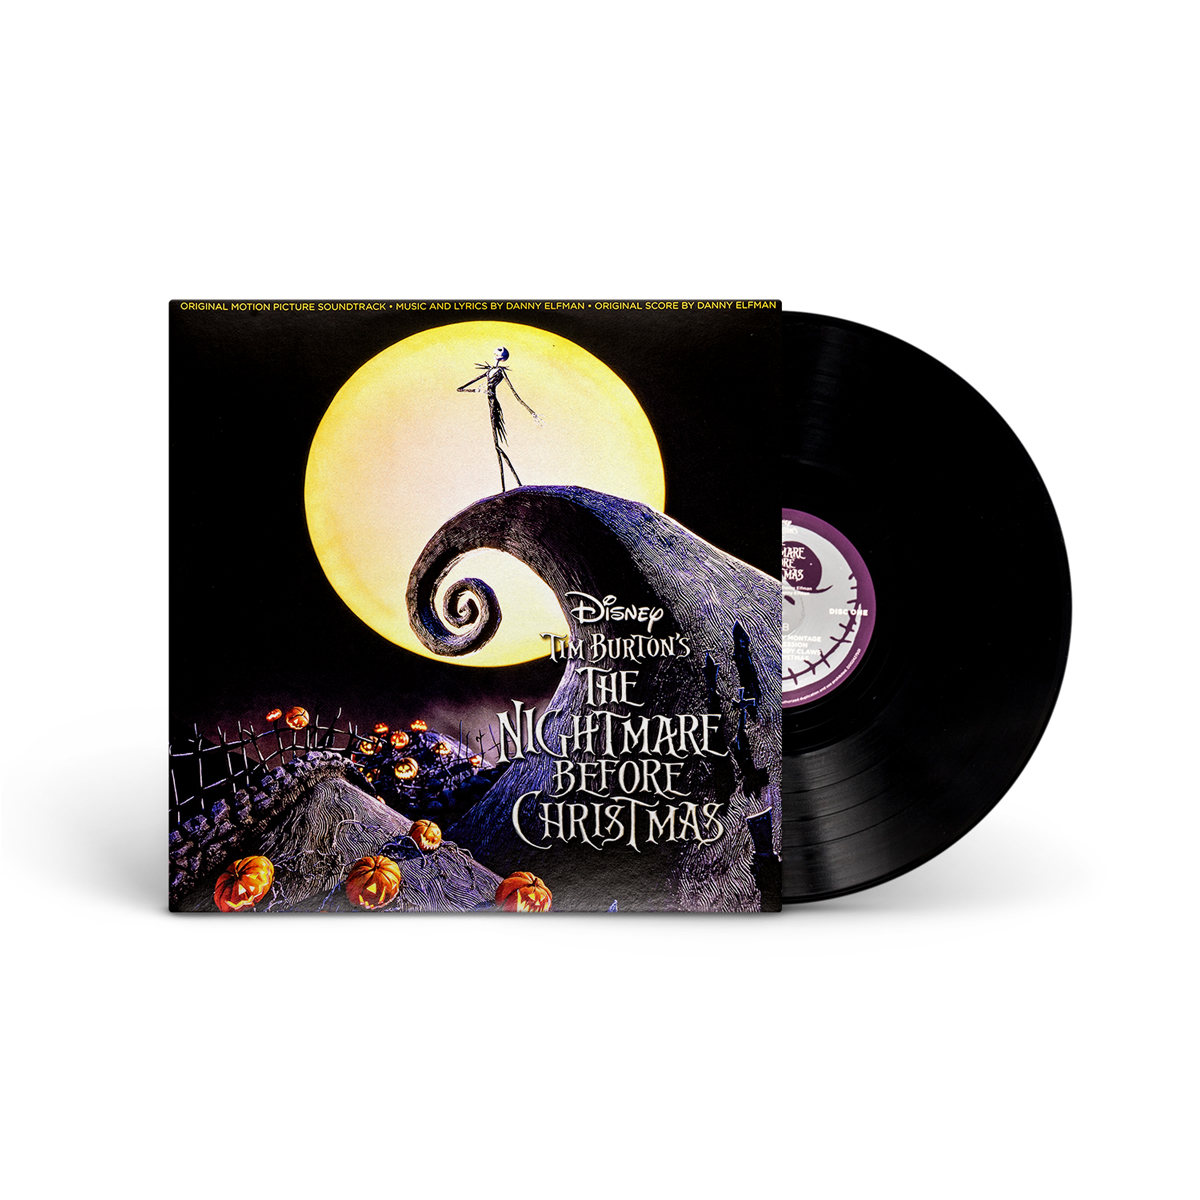 The Nightmare Before Christmas Black Vinyl | Shop the Disney Music ...